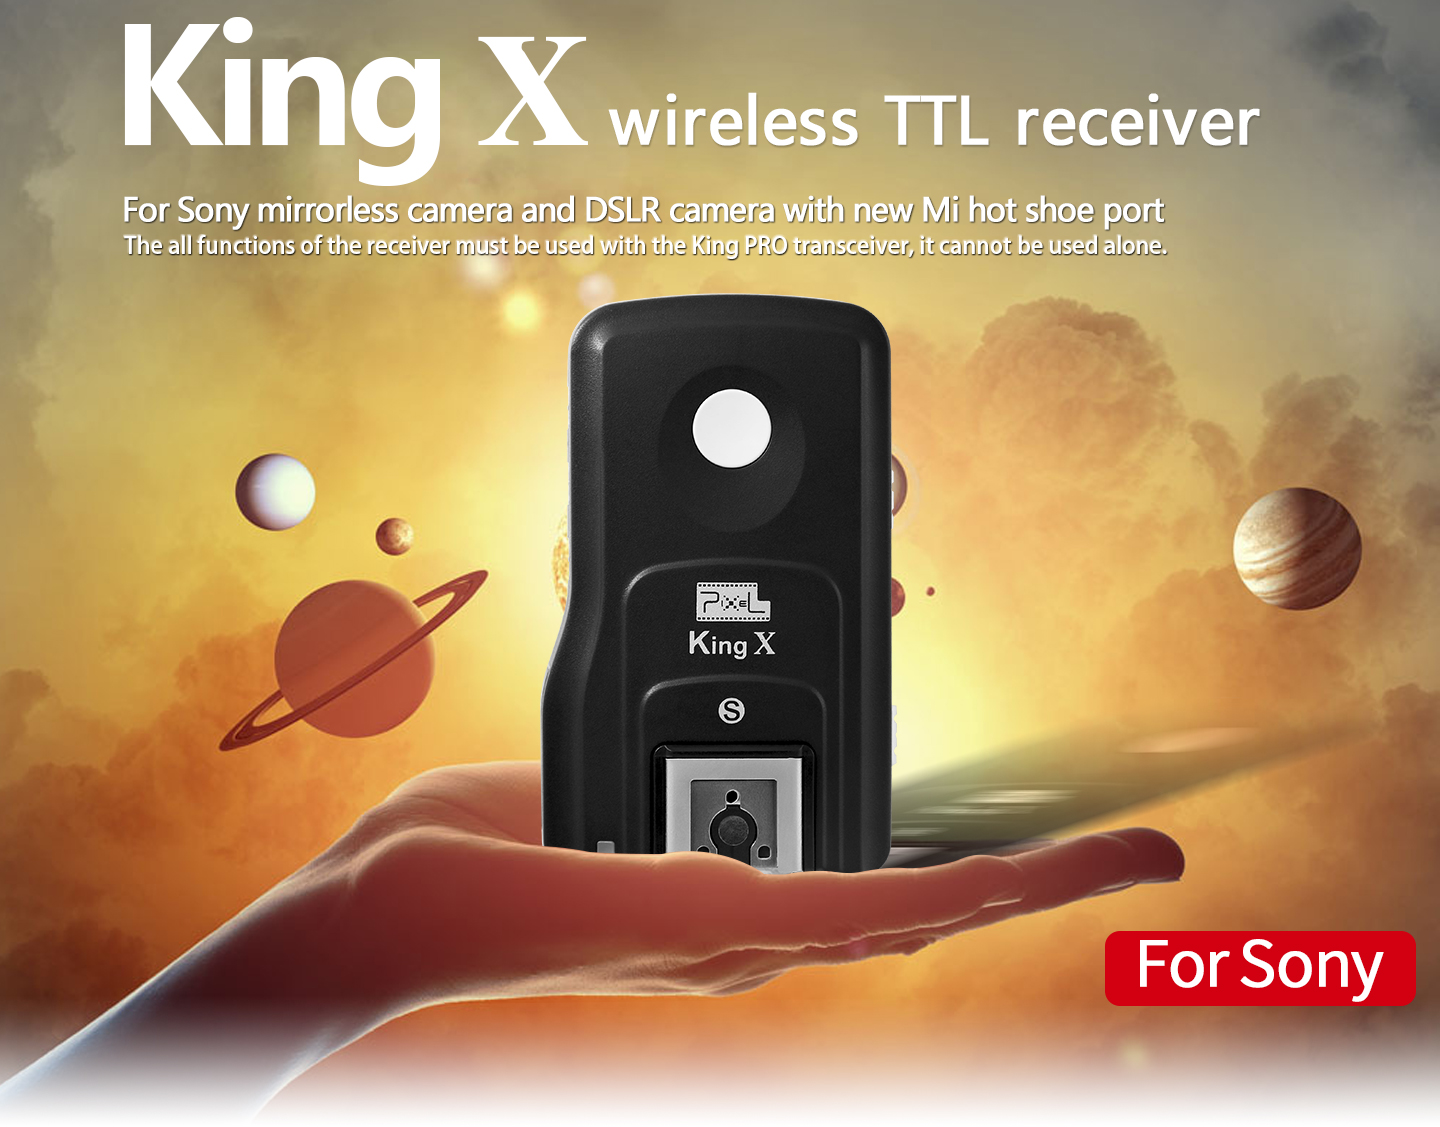 King X wireless TTL receiver